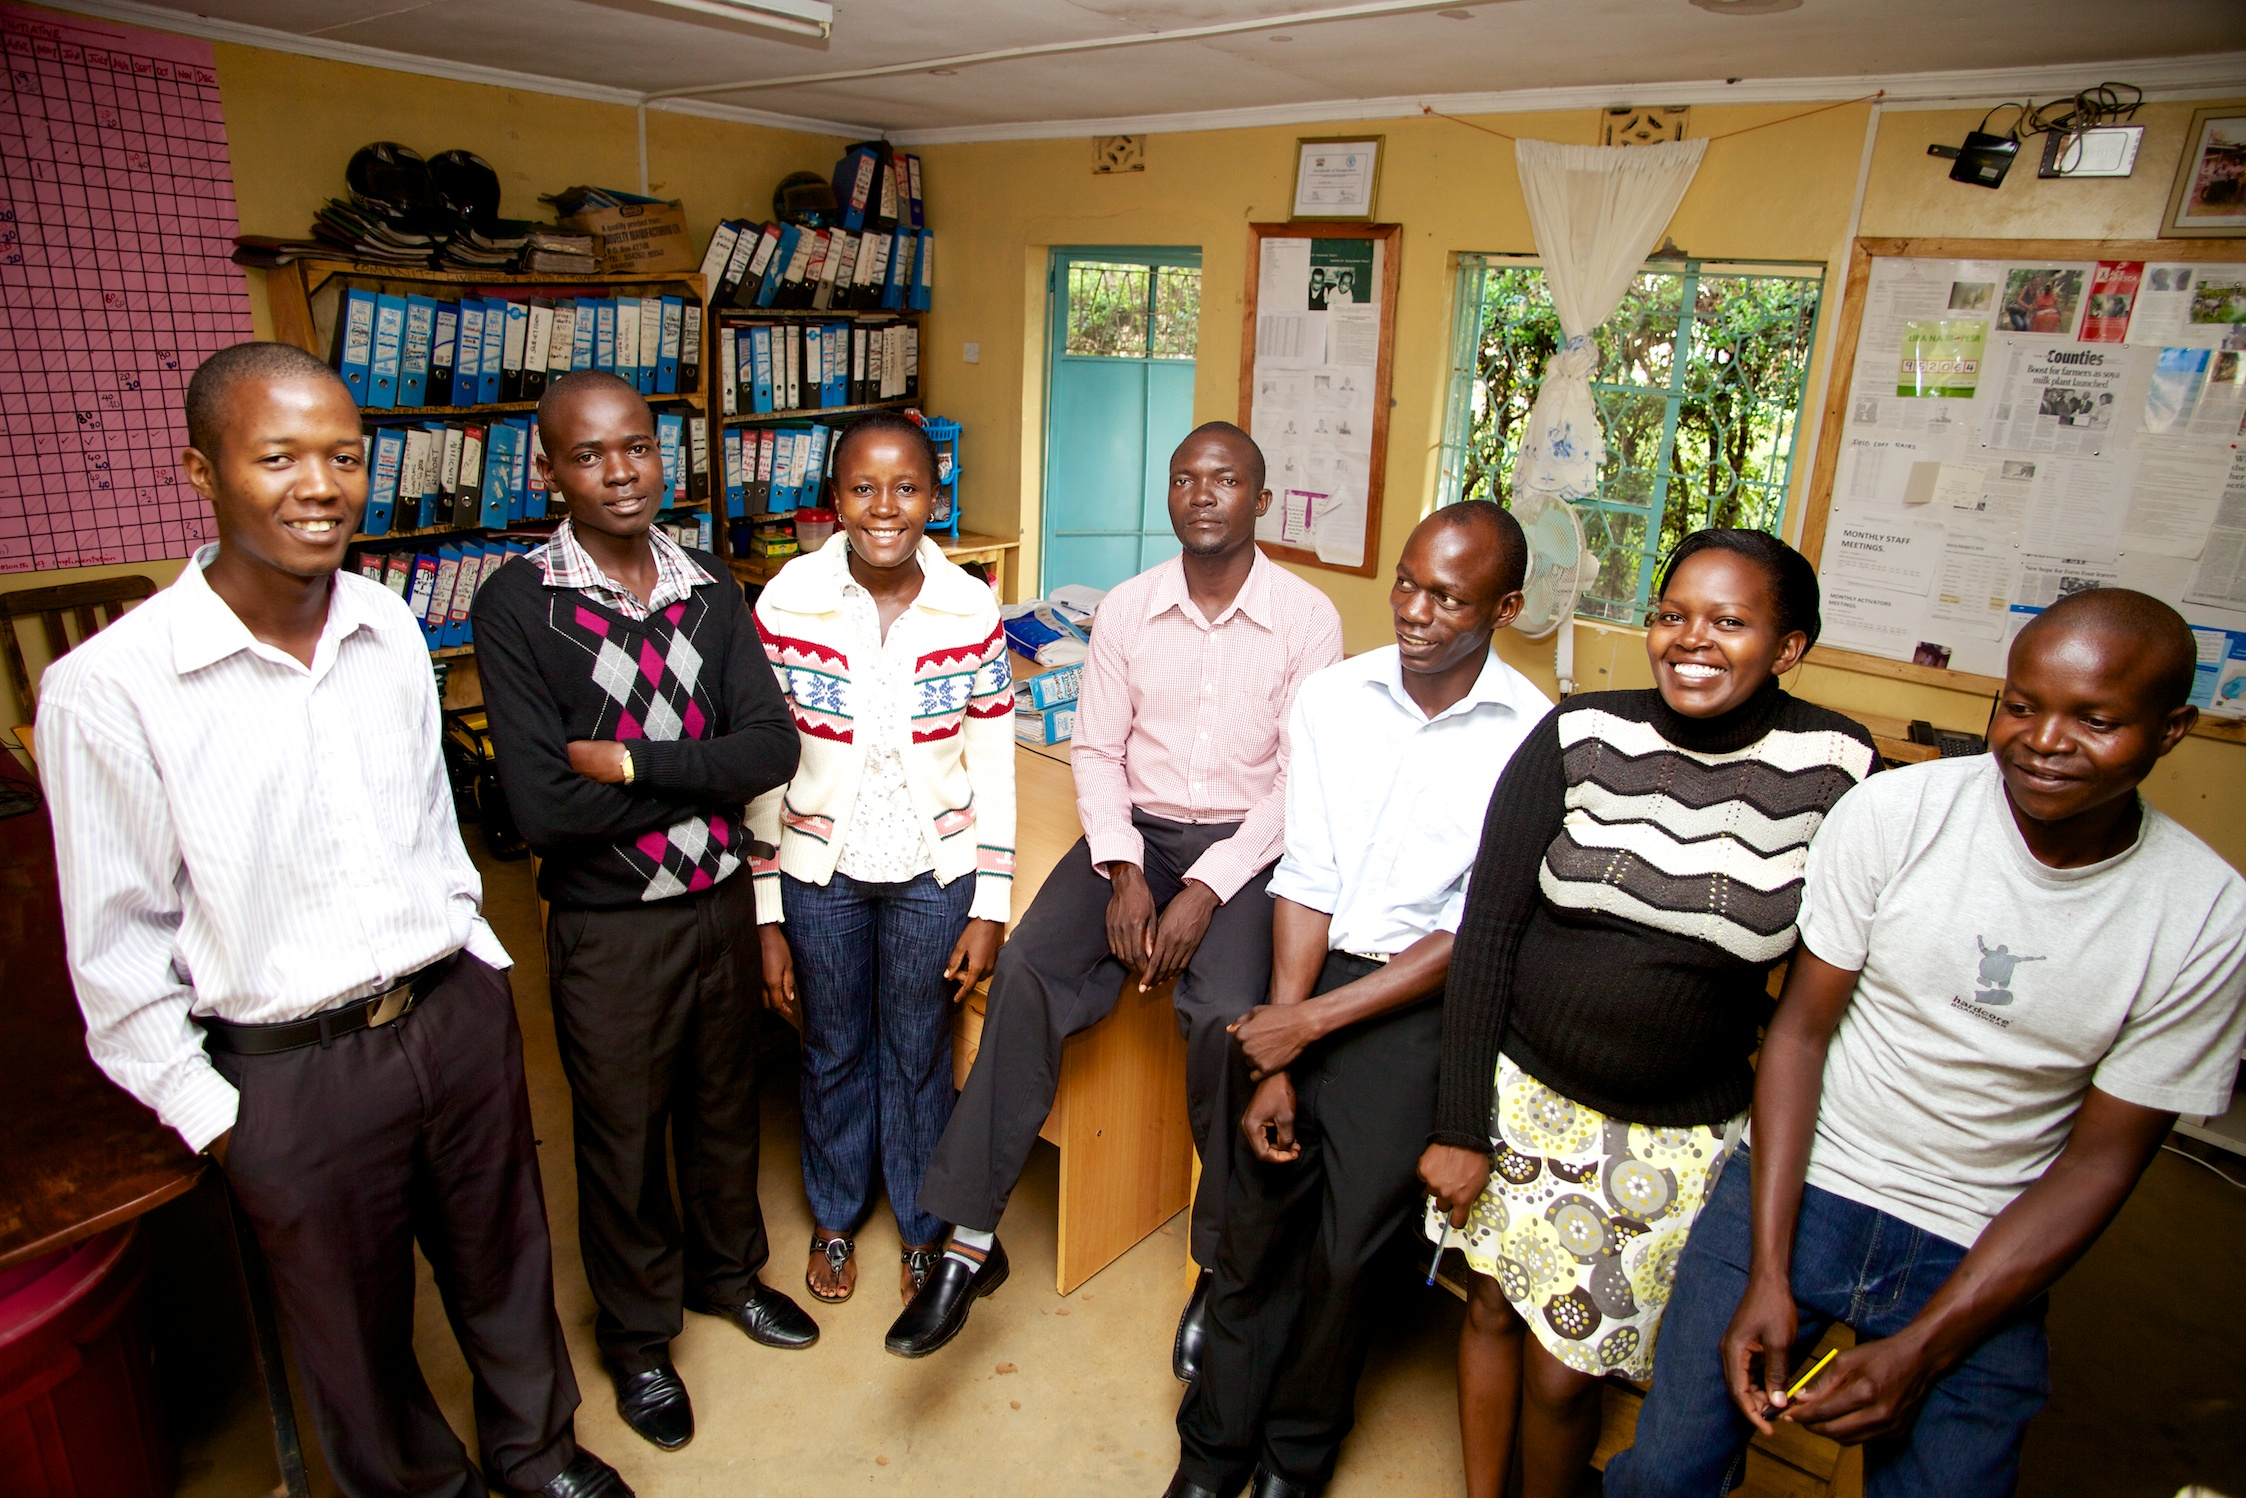 Siaya Team - Christopher in the middle